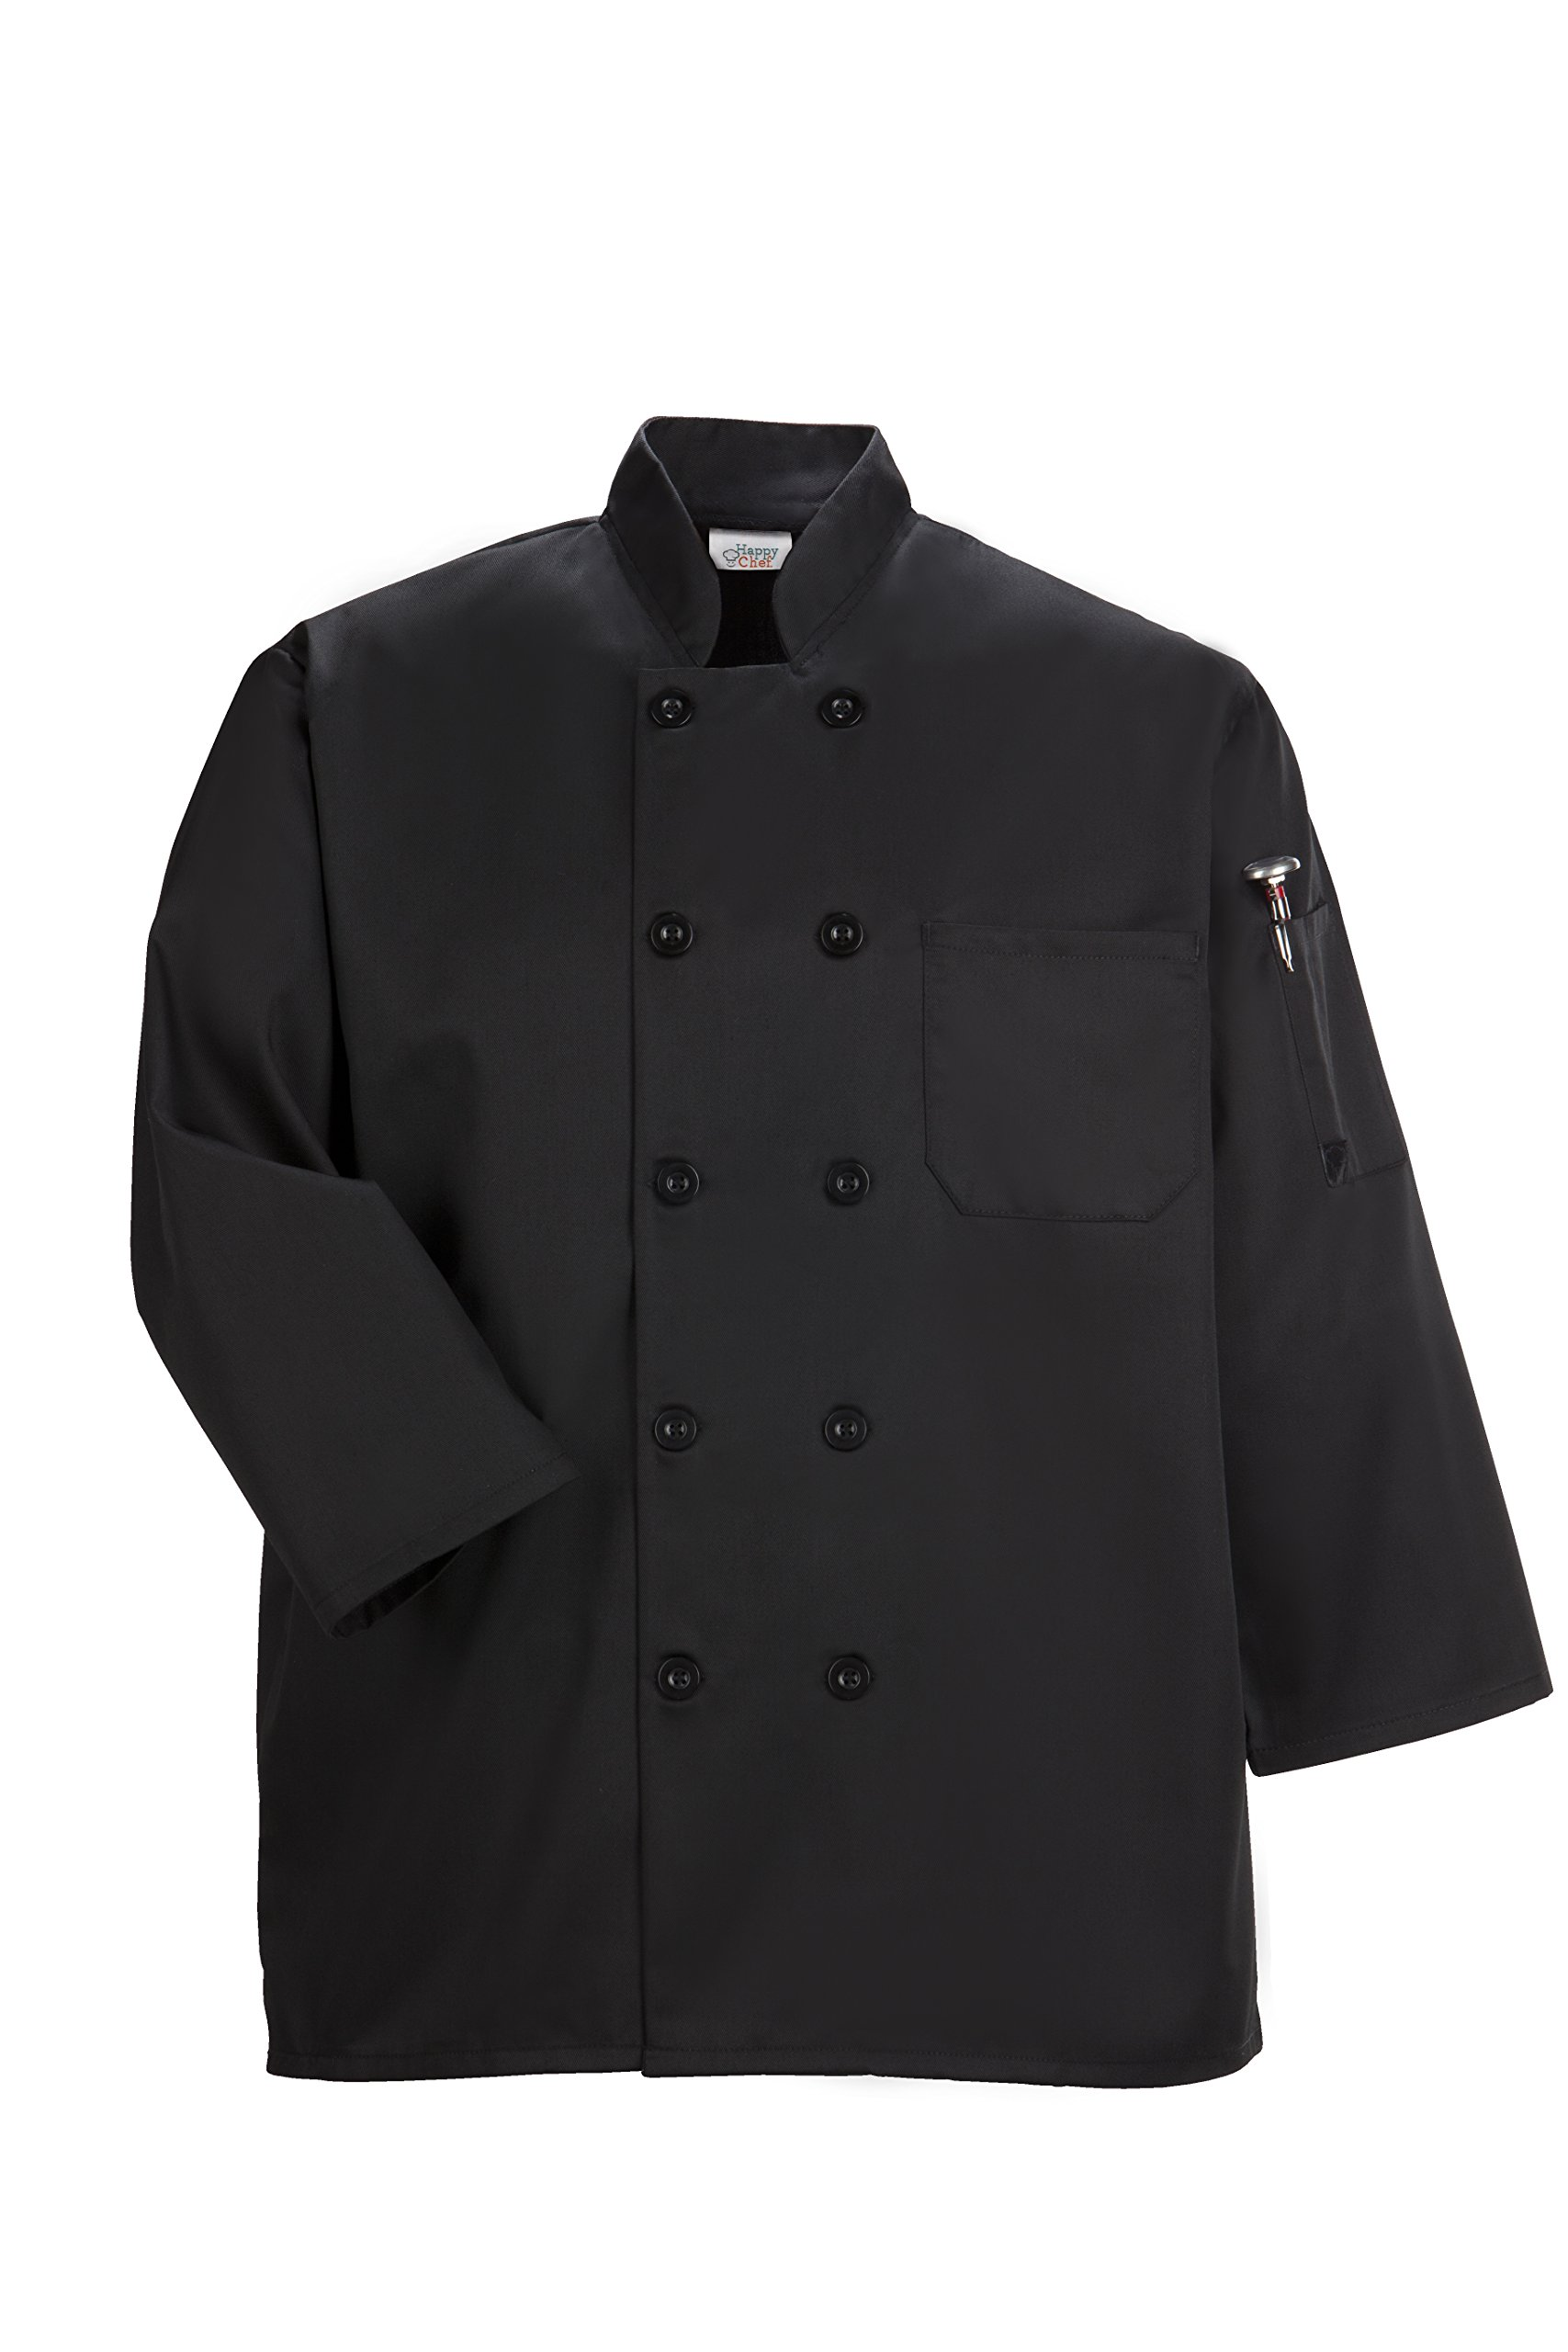 Happy Chef Traditional 3/4 Sleeve Chef Coat (Black, Large)